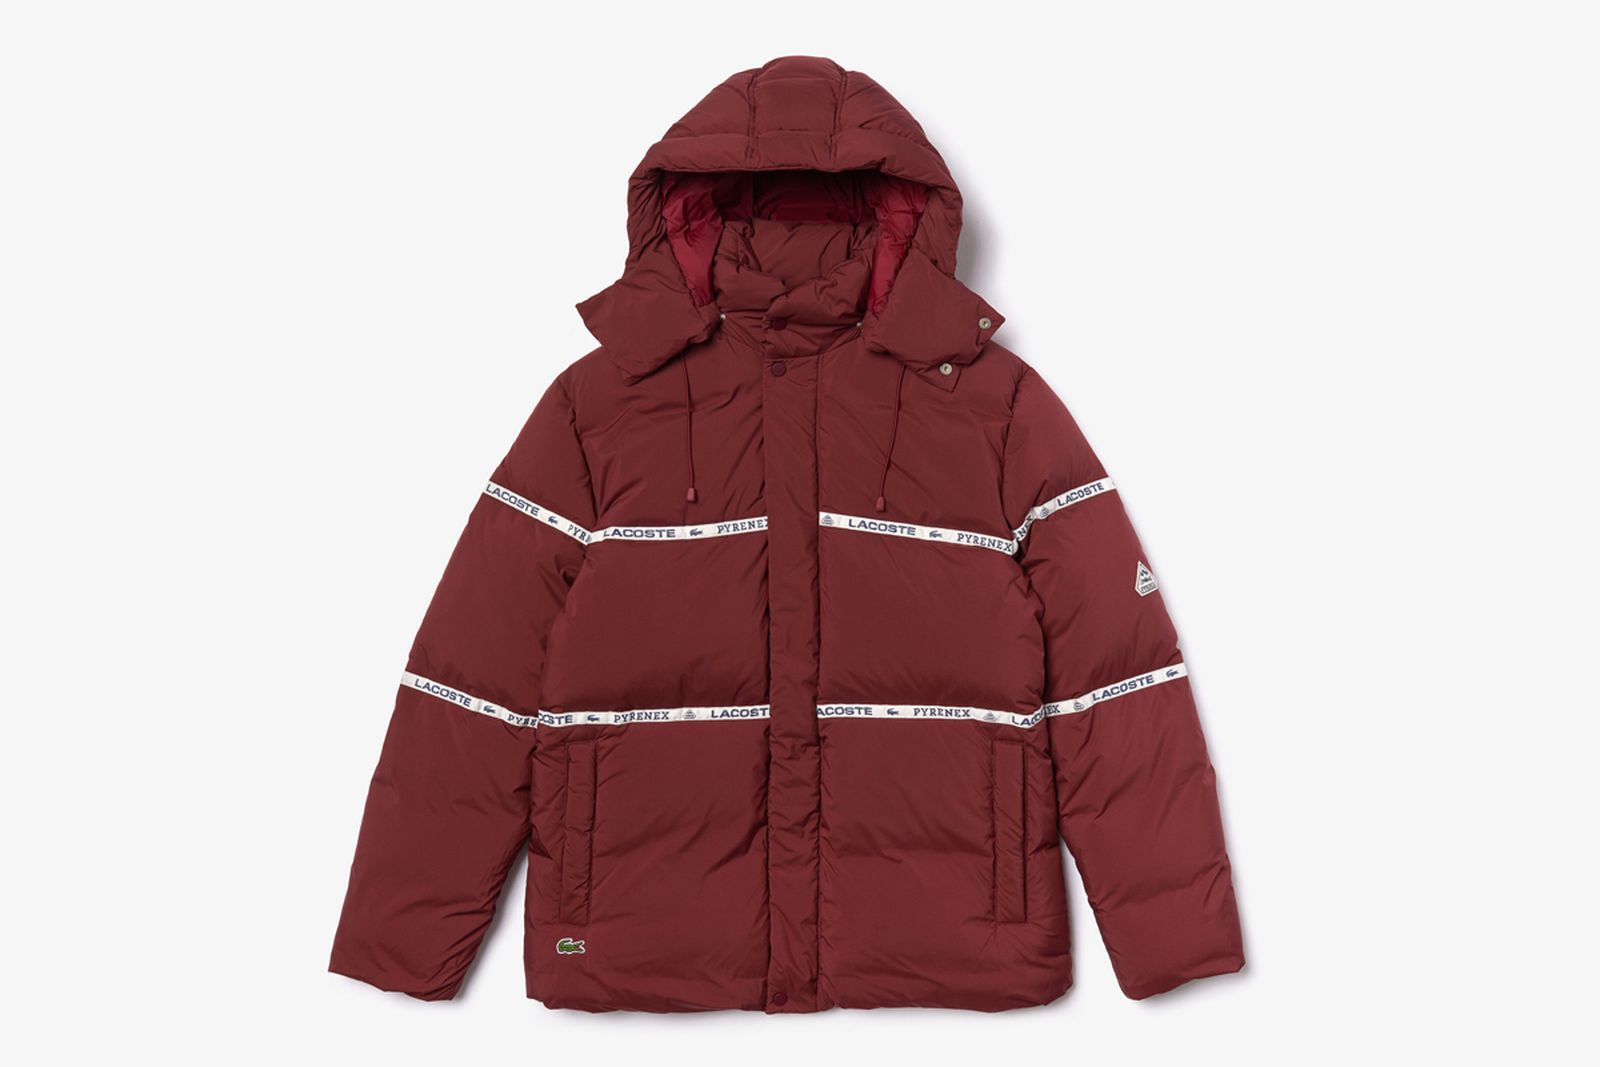 lacoste winter icons Pyrenex Alpha Industries gloverall k-way